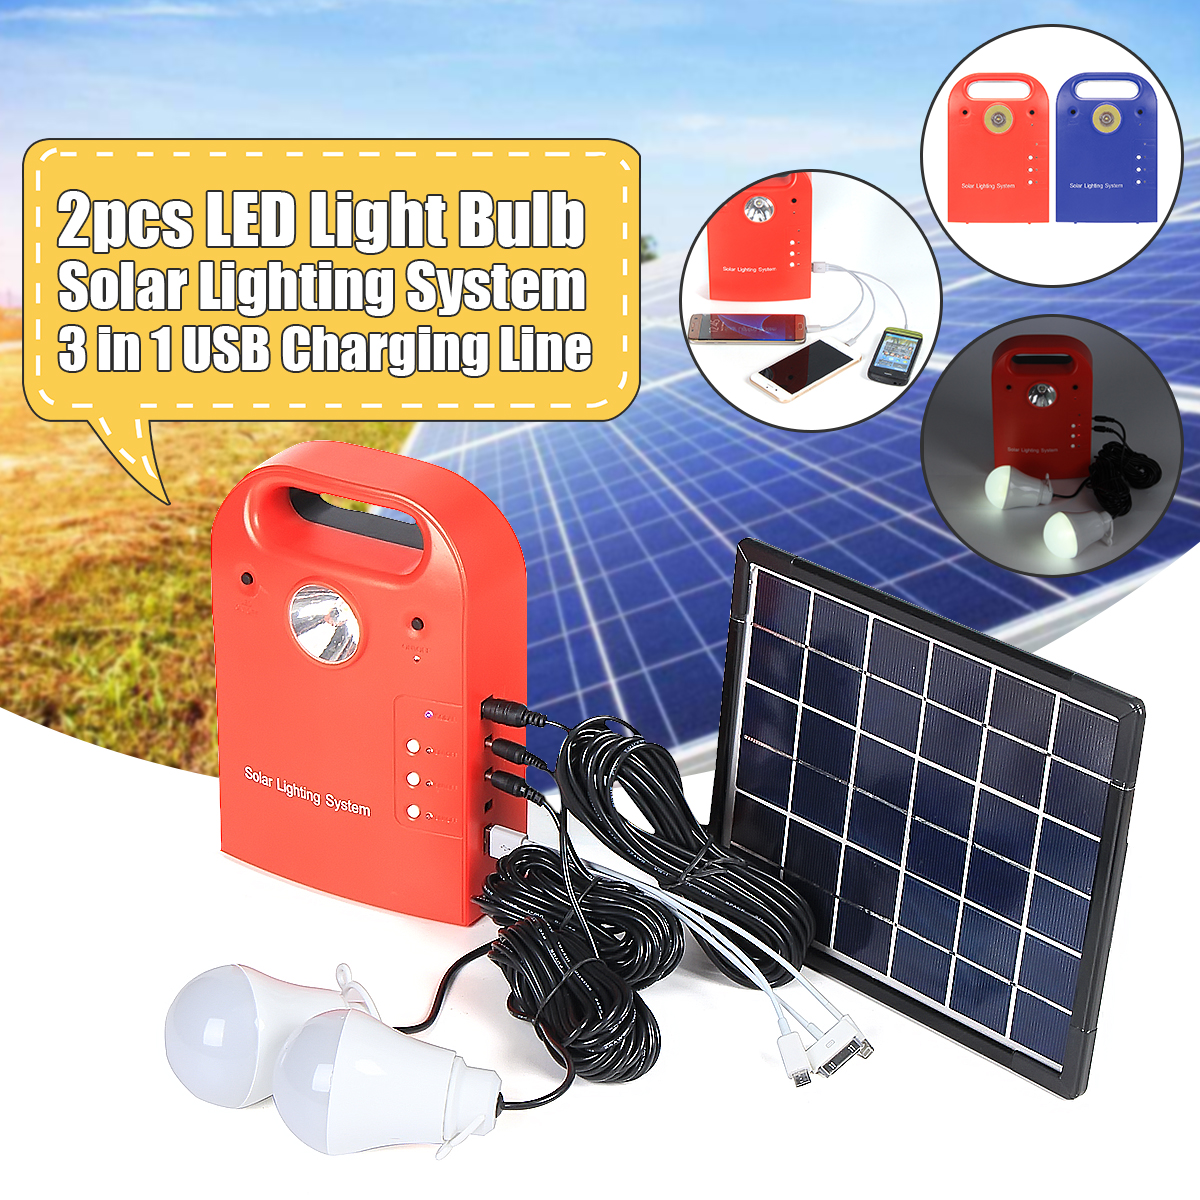 5W Portable Small DC Home Outdoor Lighting Solar Panels Charging Generator Power System portable dc solar panel charging generator power supply board charger radio mp3 flashlight mobile led lighting system outdoor